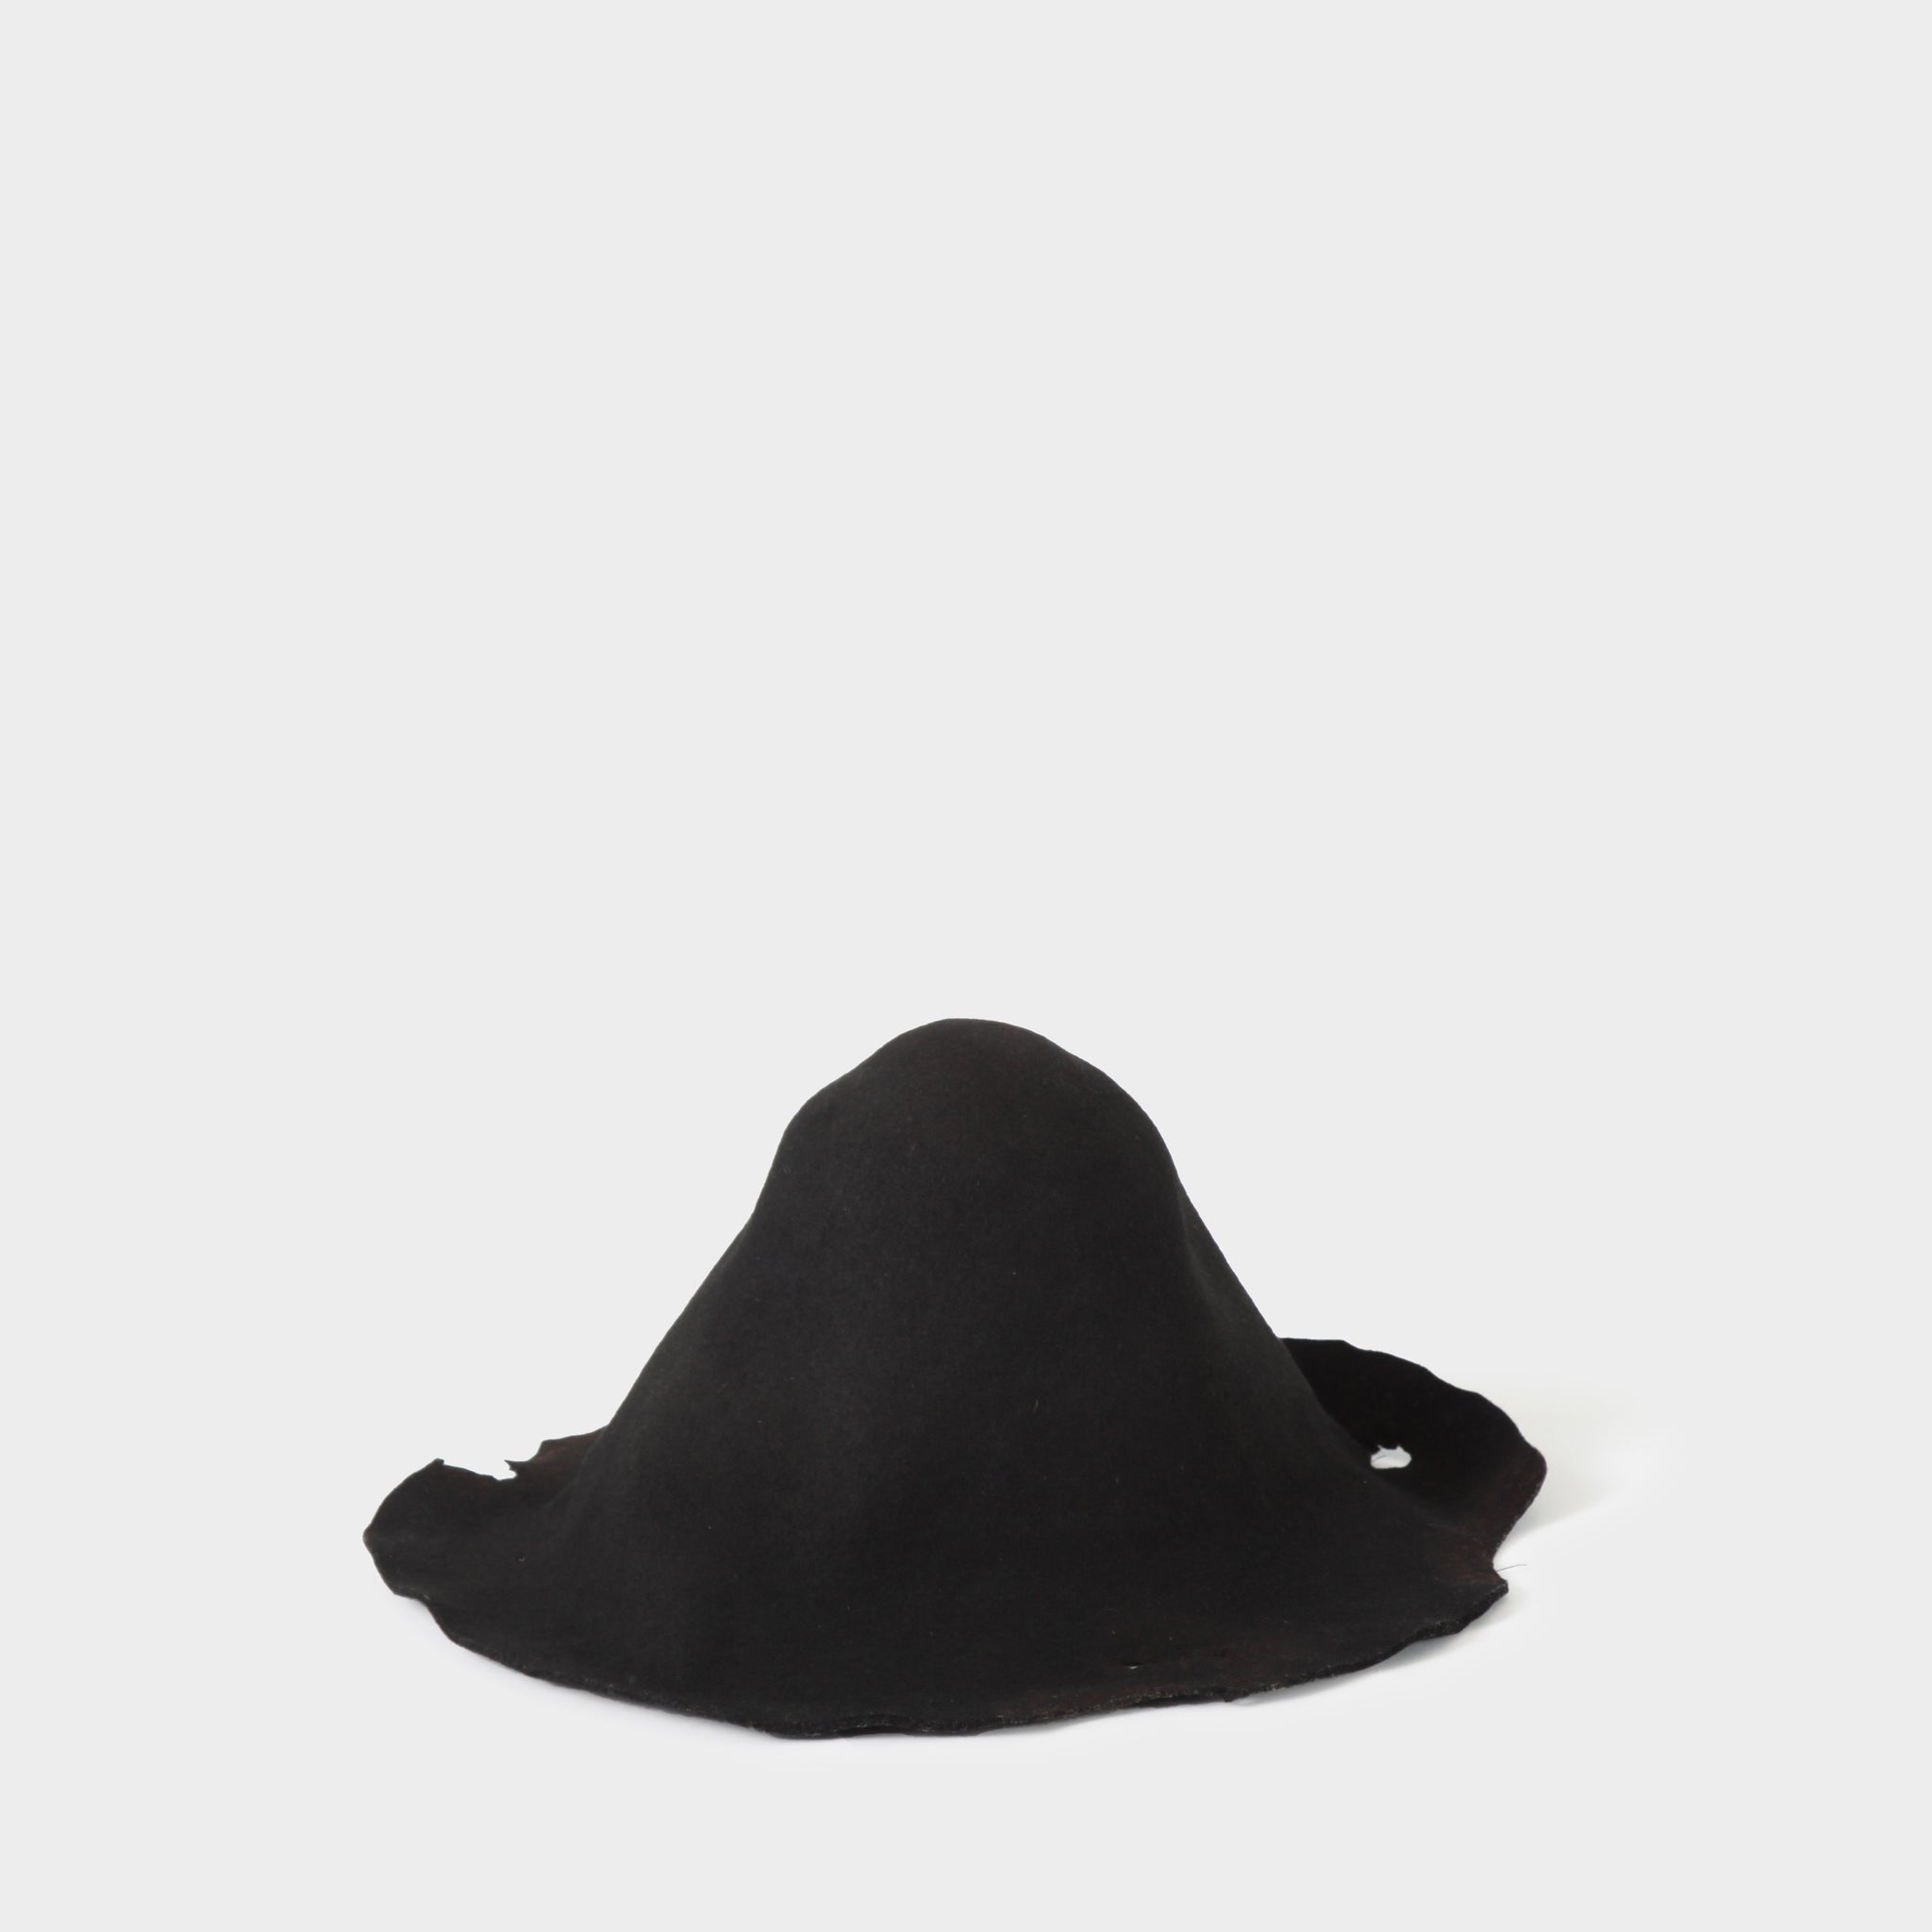 Aleksandr Manamis Rabbit Felt Distressed Hat